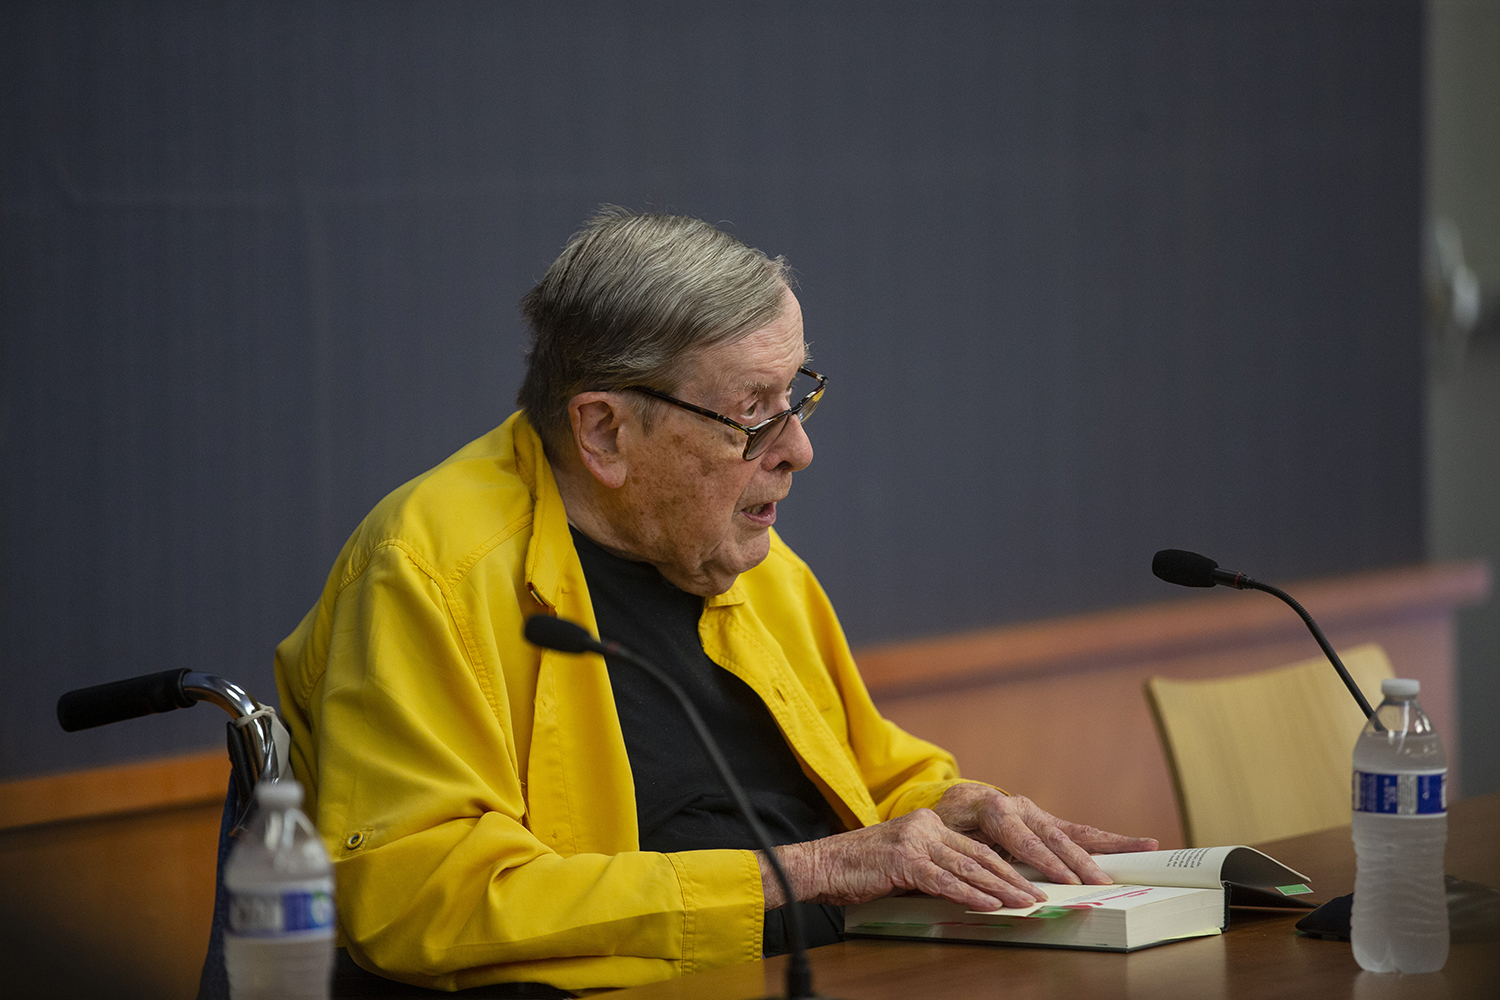 Former President of the University of Iowa Sandy Boyd reads from his memoir at the Iowa City Public Library on July 28, 2019. Boyd memoir is titled A Life on the Middle West's Never-Ending Frontier. (Katie Goodale/The Daily Iowan)